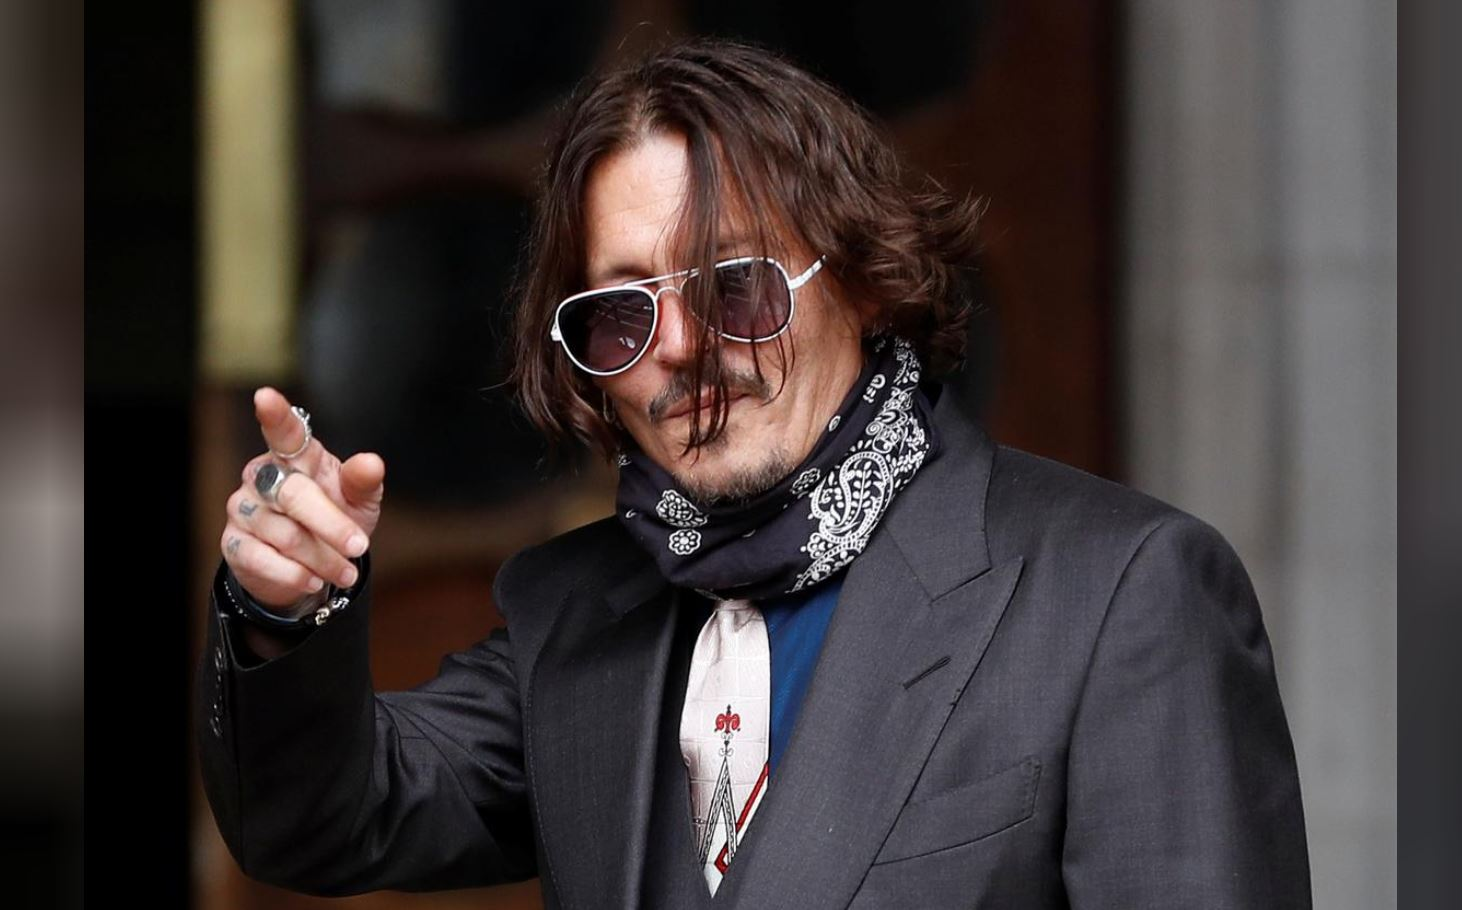 Actor Depp denies slapping ex-wife in row over 'Wino forever' tattoo